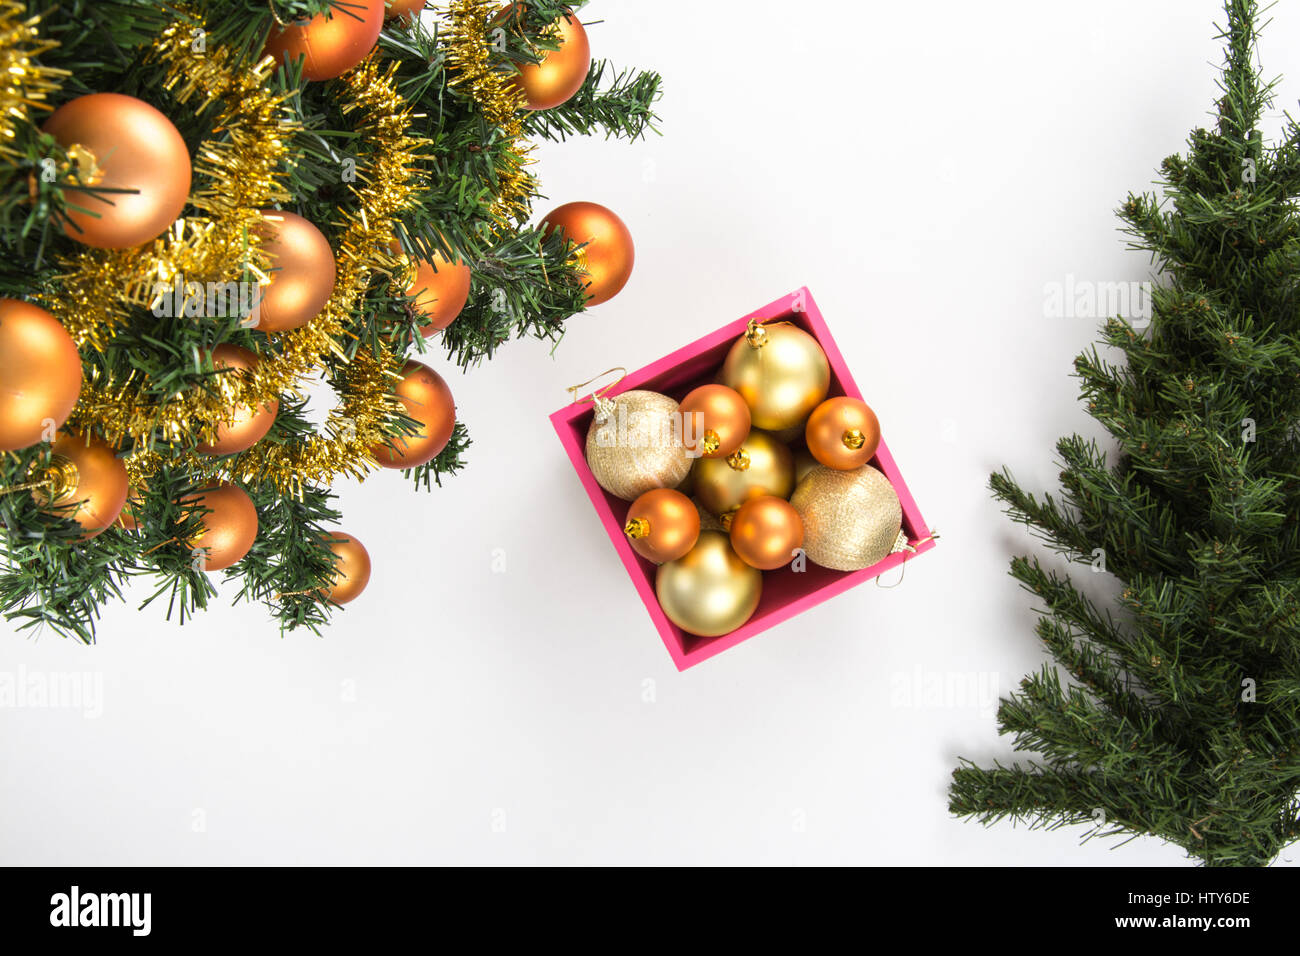 Christmas Tree With Golden Balls Tinsel Garland Box Of Ornaments